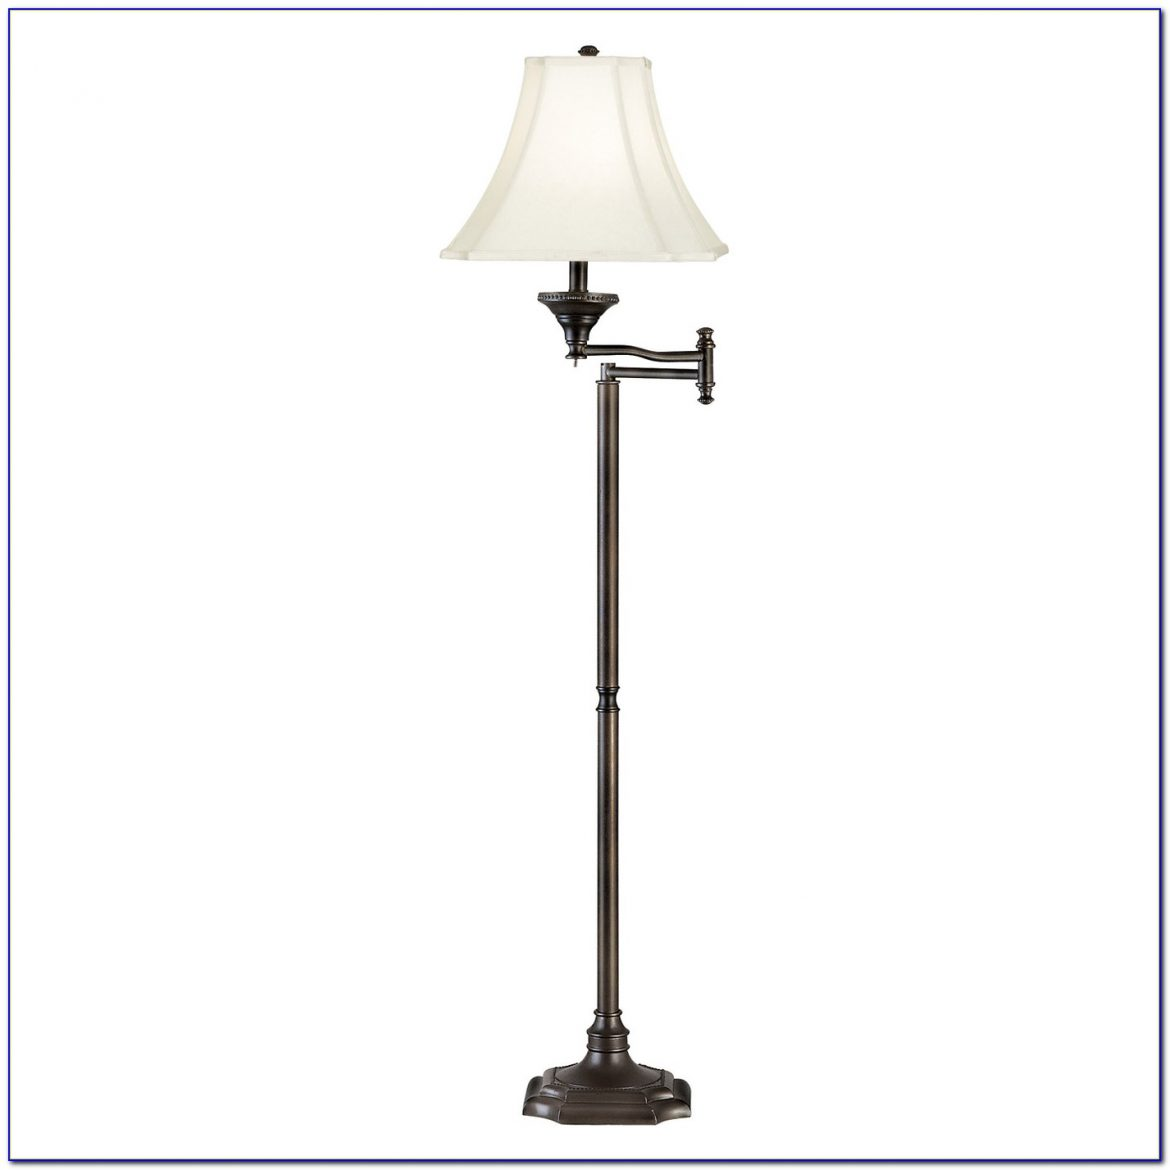 Kenroy Home Ashlen Floor Lamp